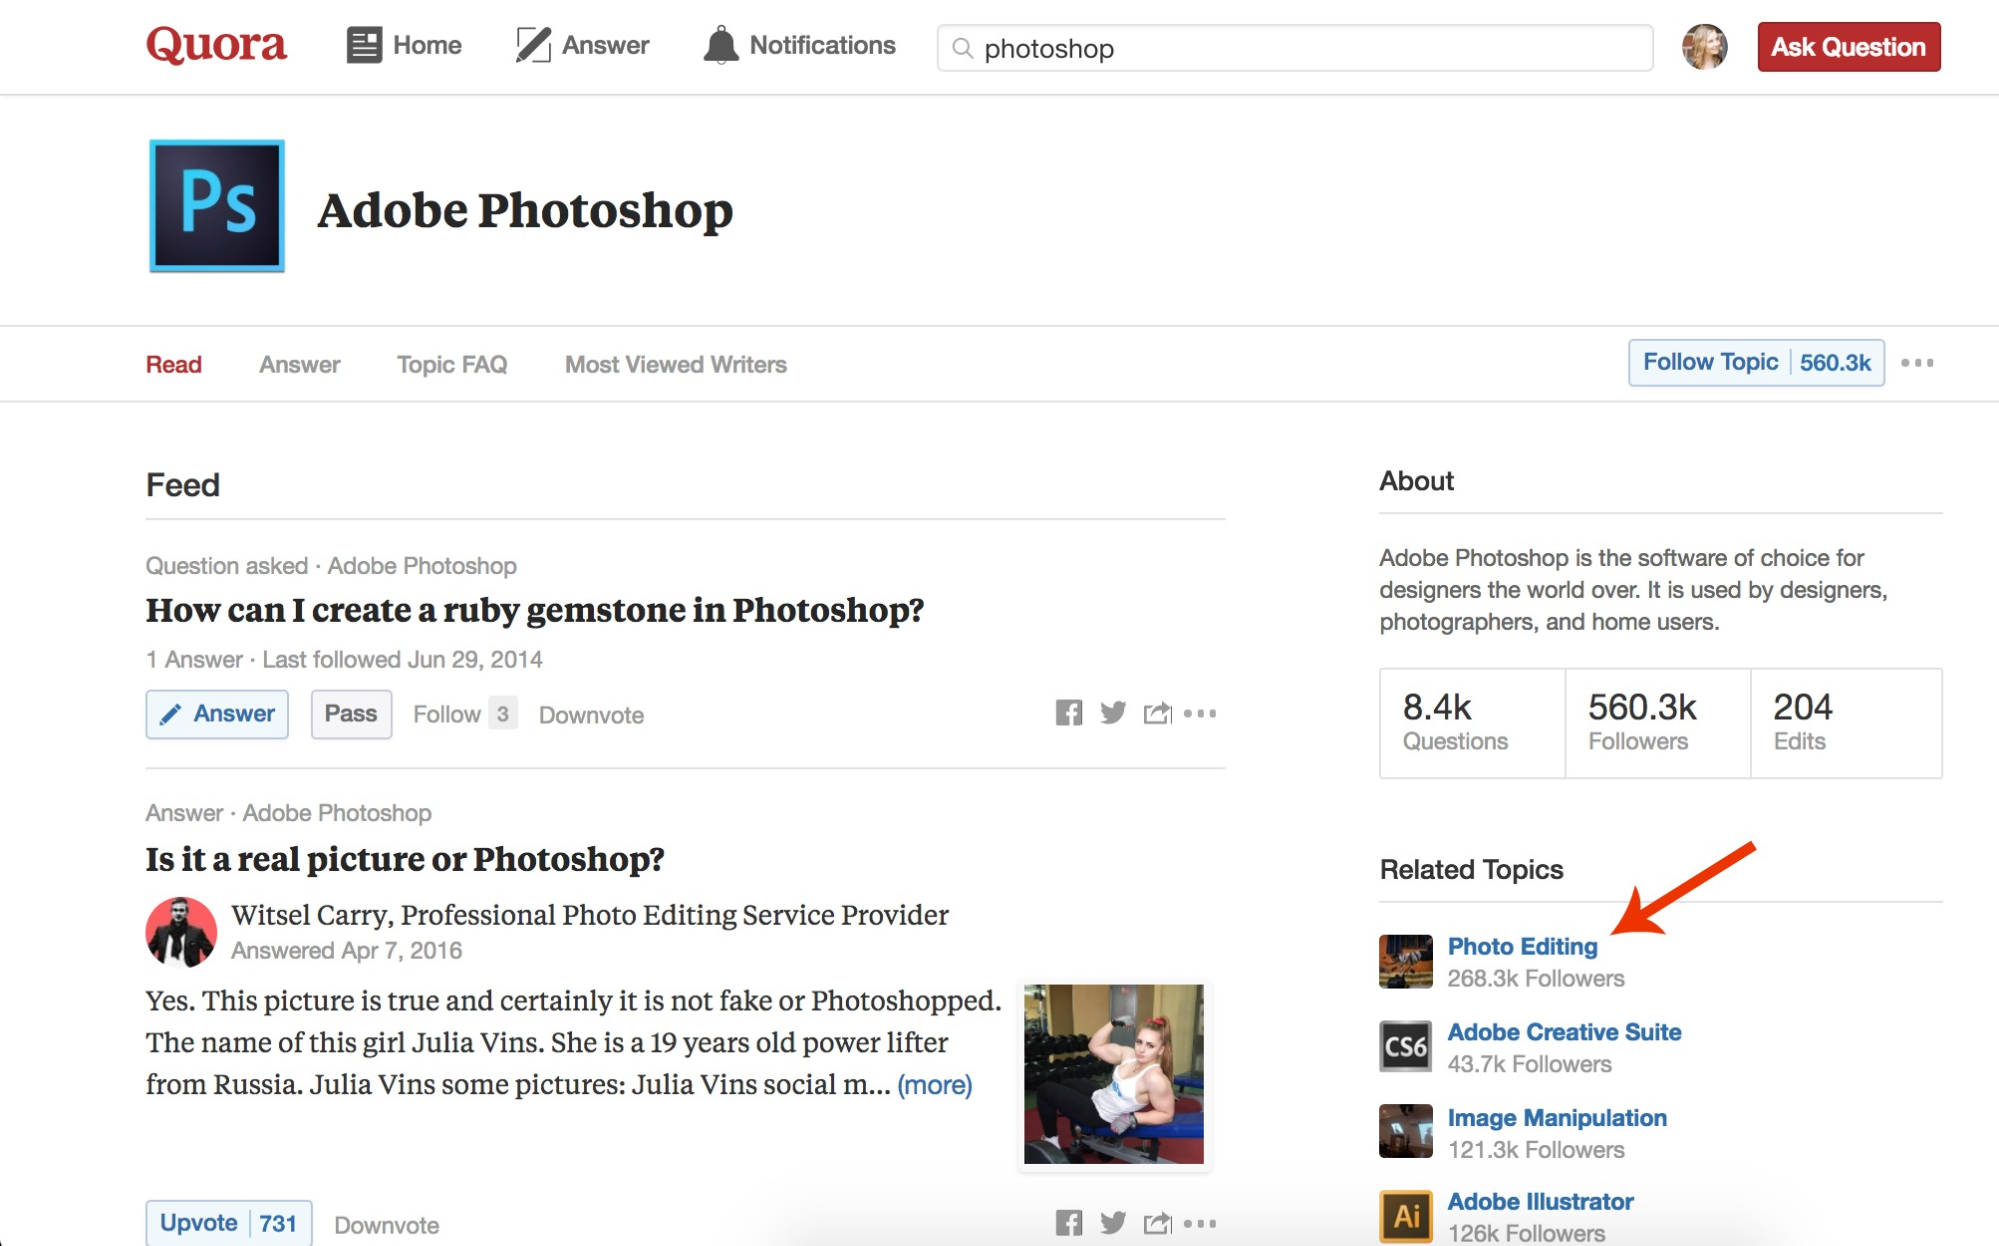 Screenshot showing a category on Quora